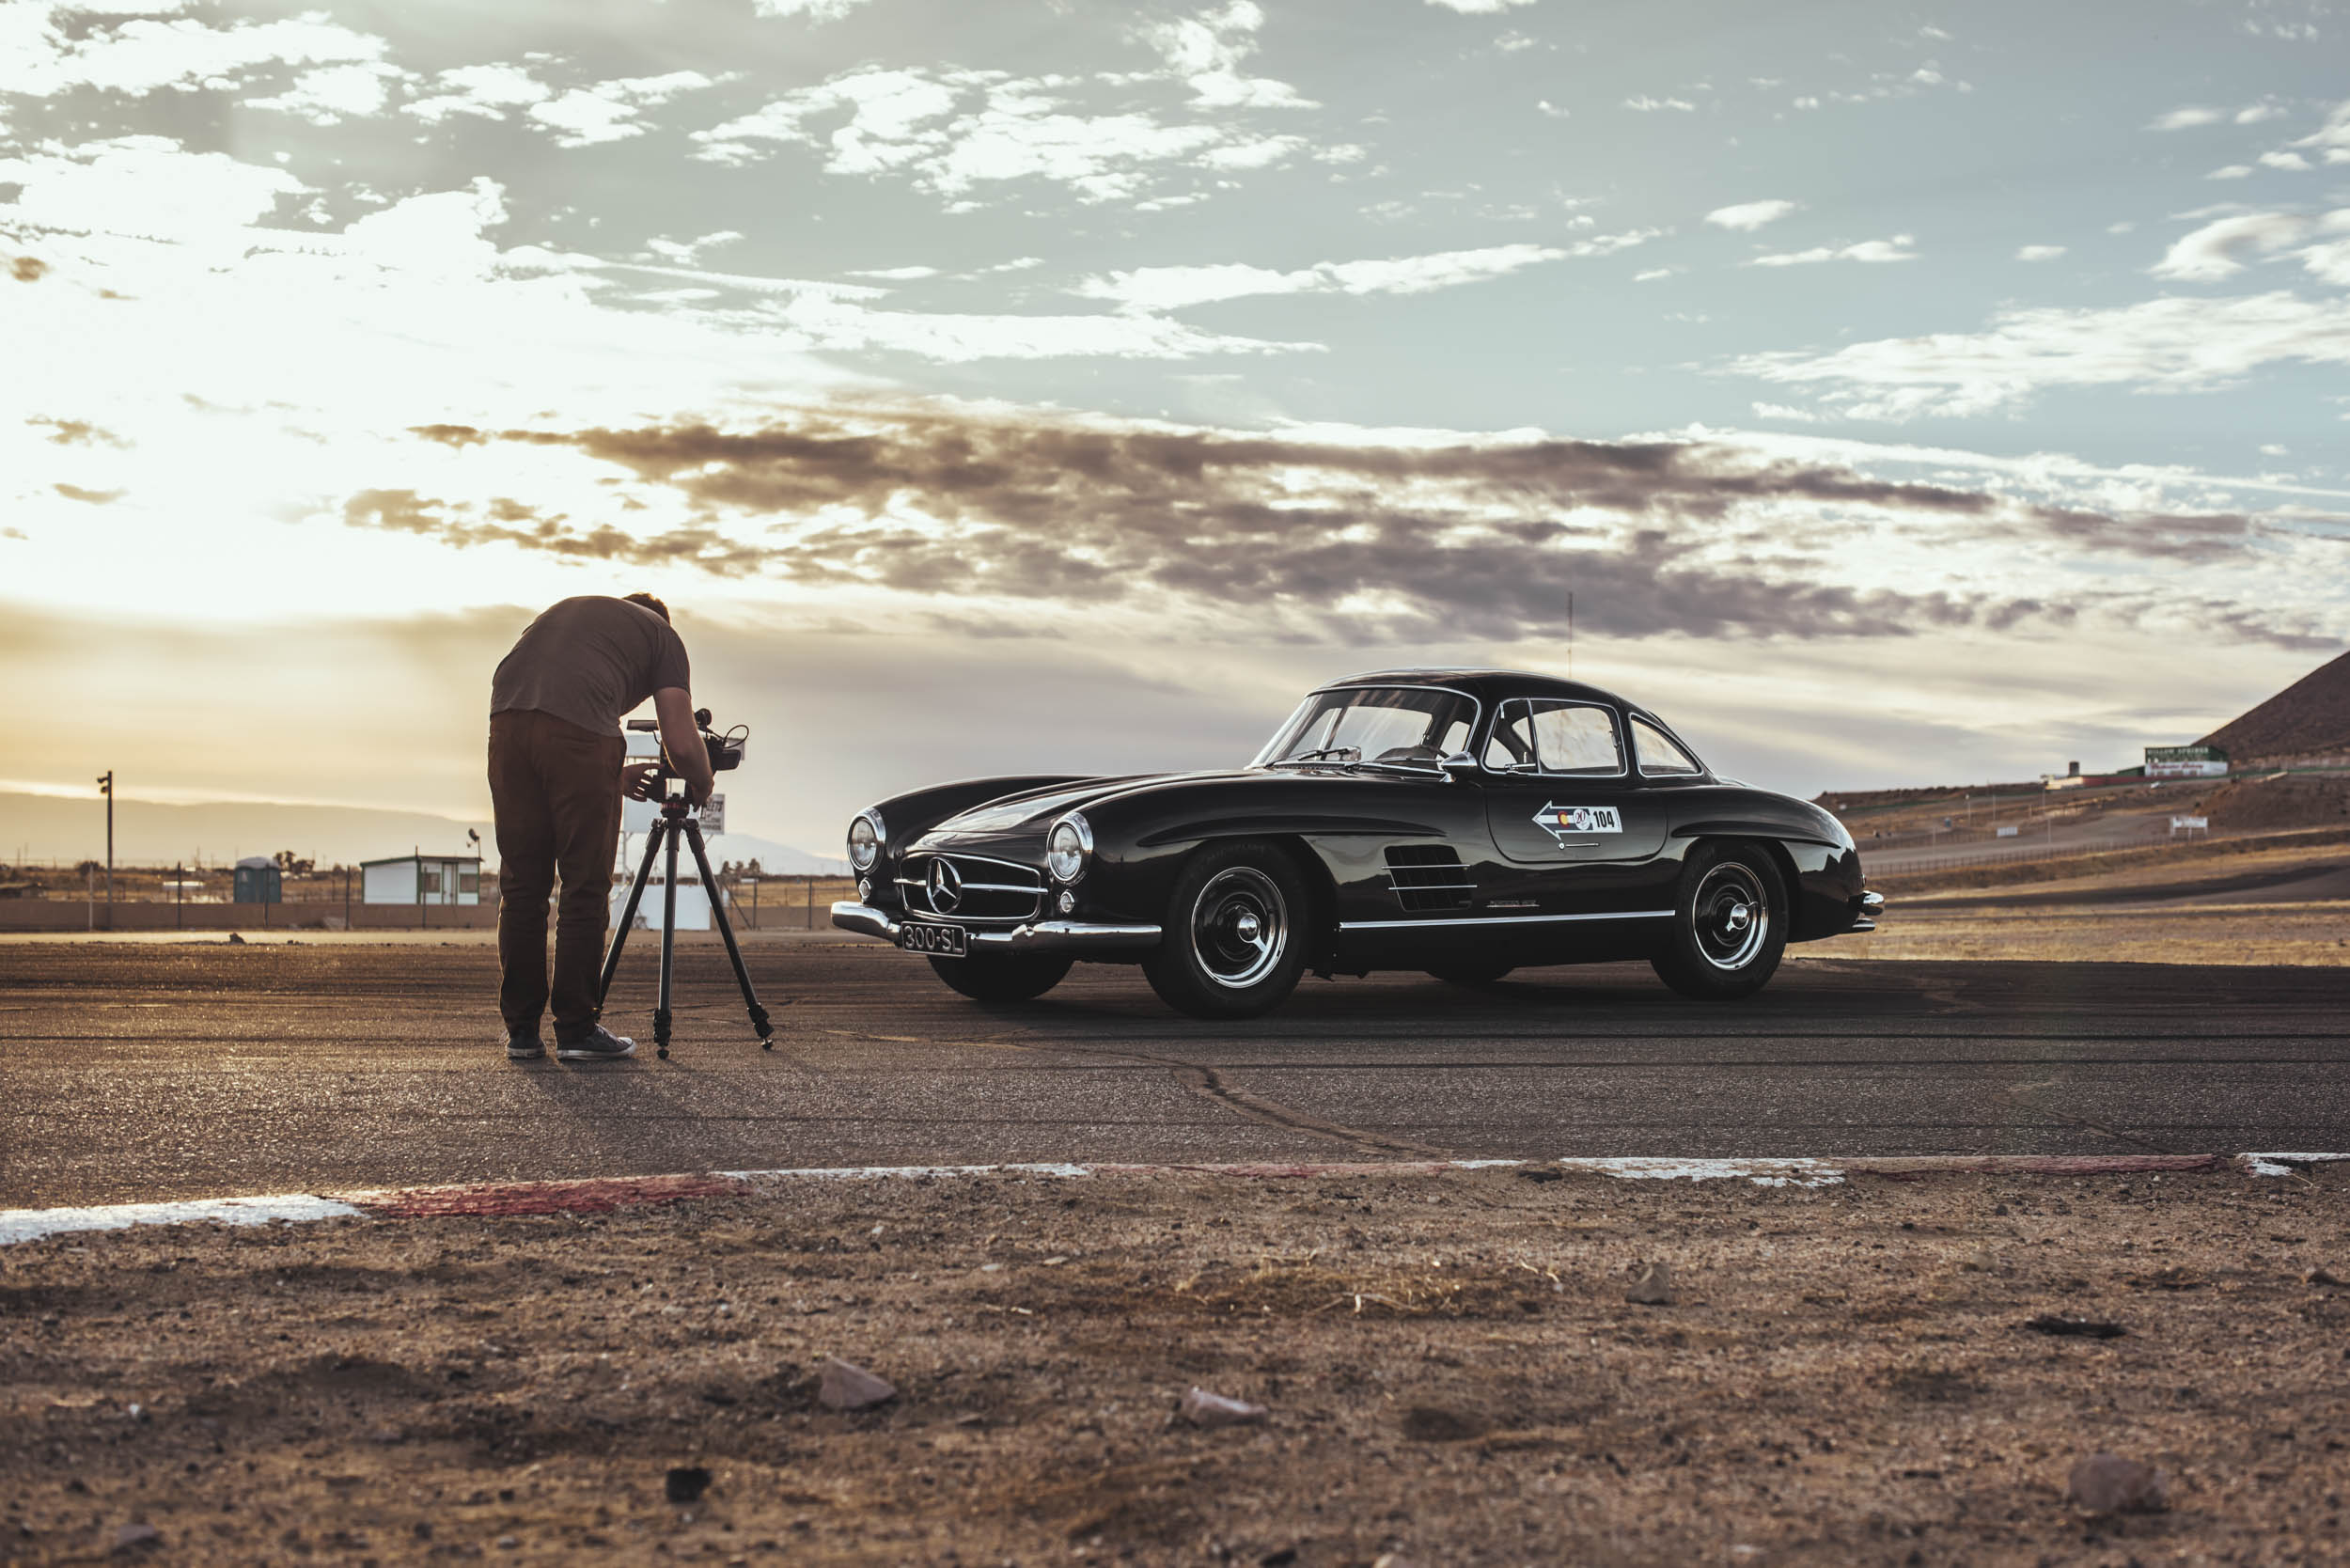 behind the scenes of Hagerty's Flat Out Gullwing shoot